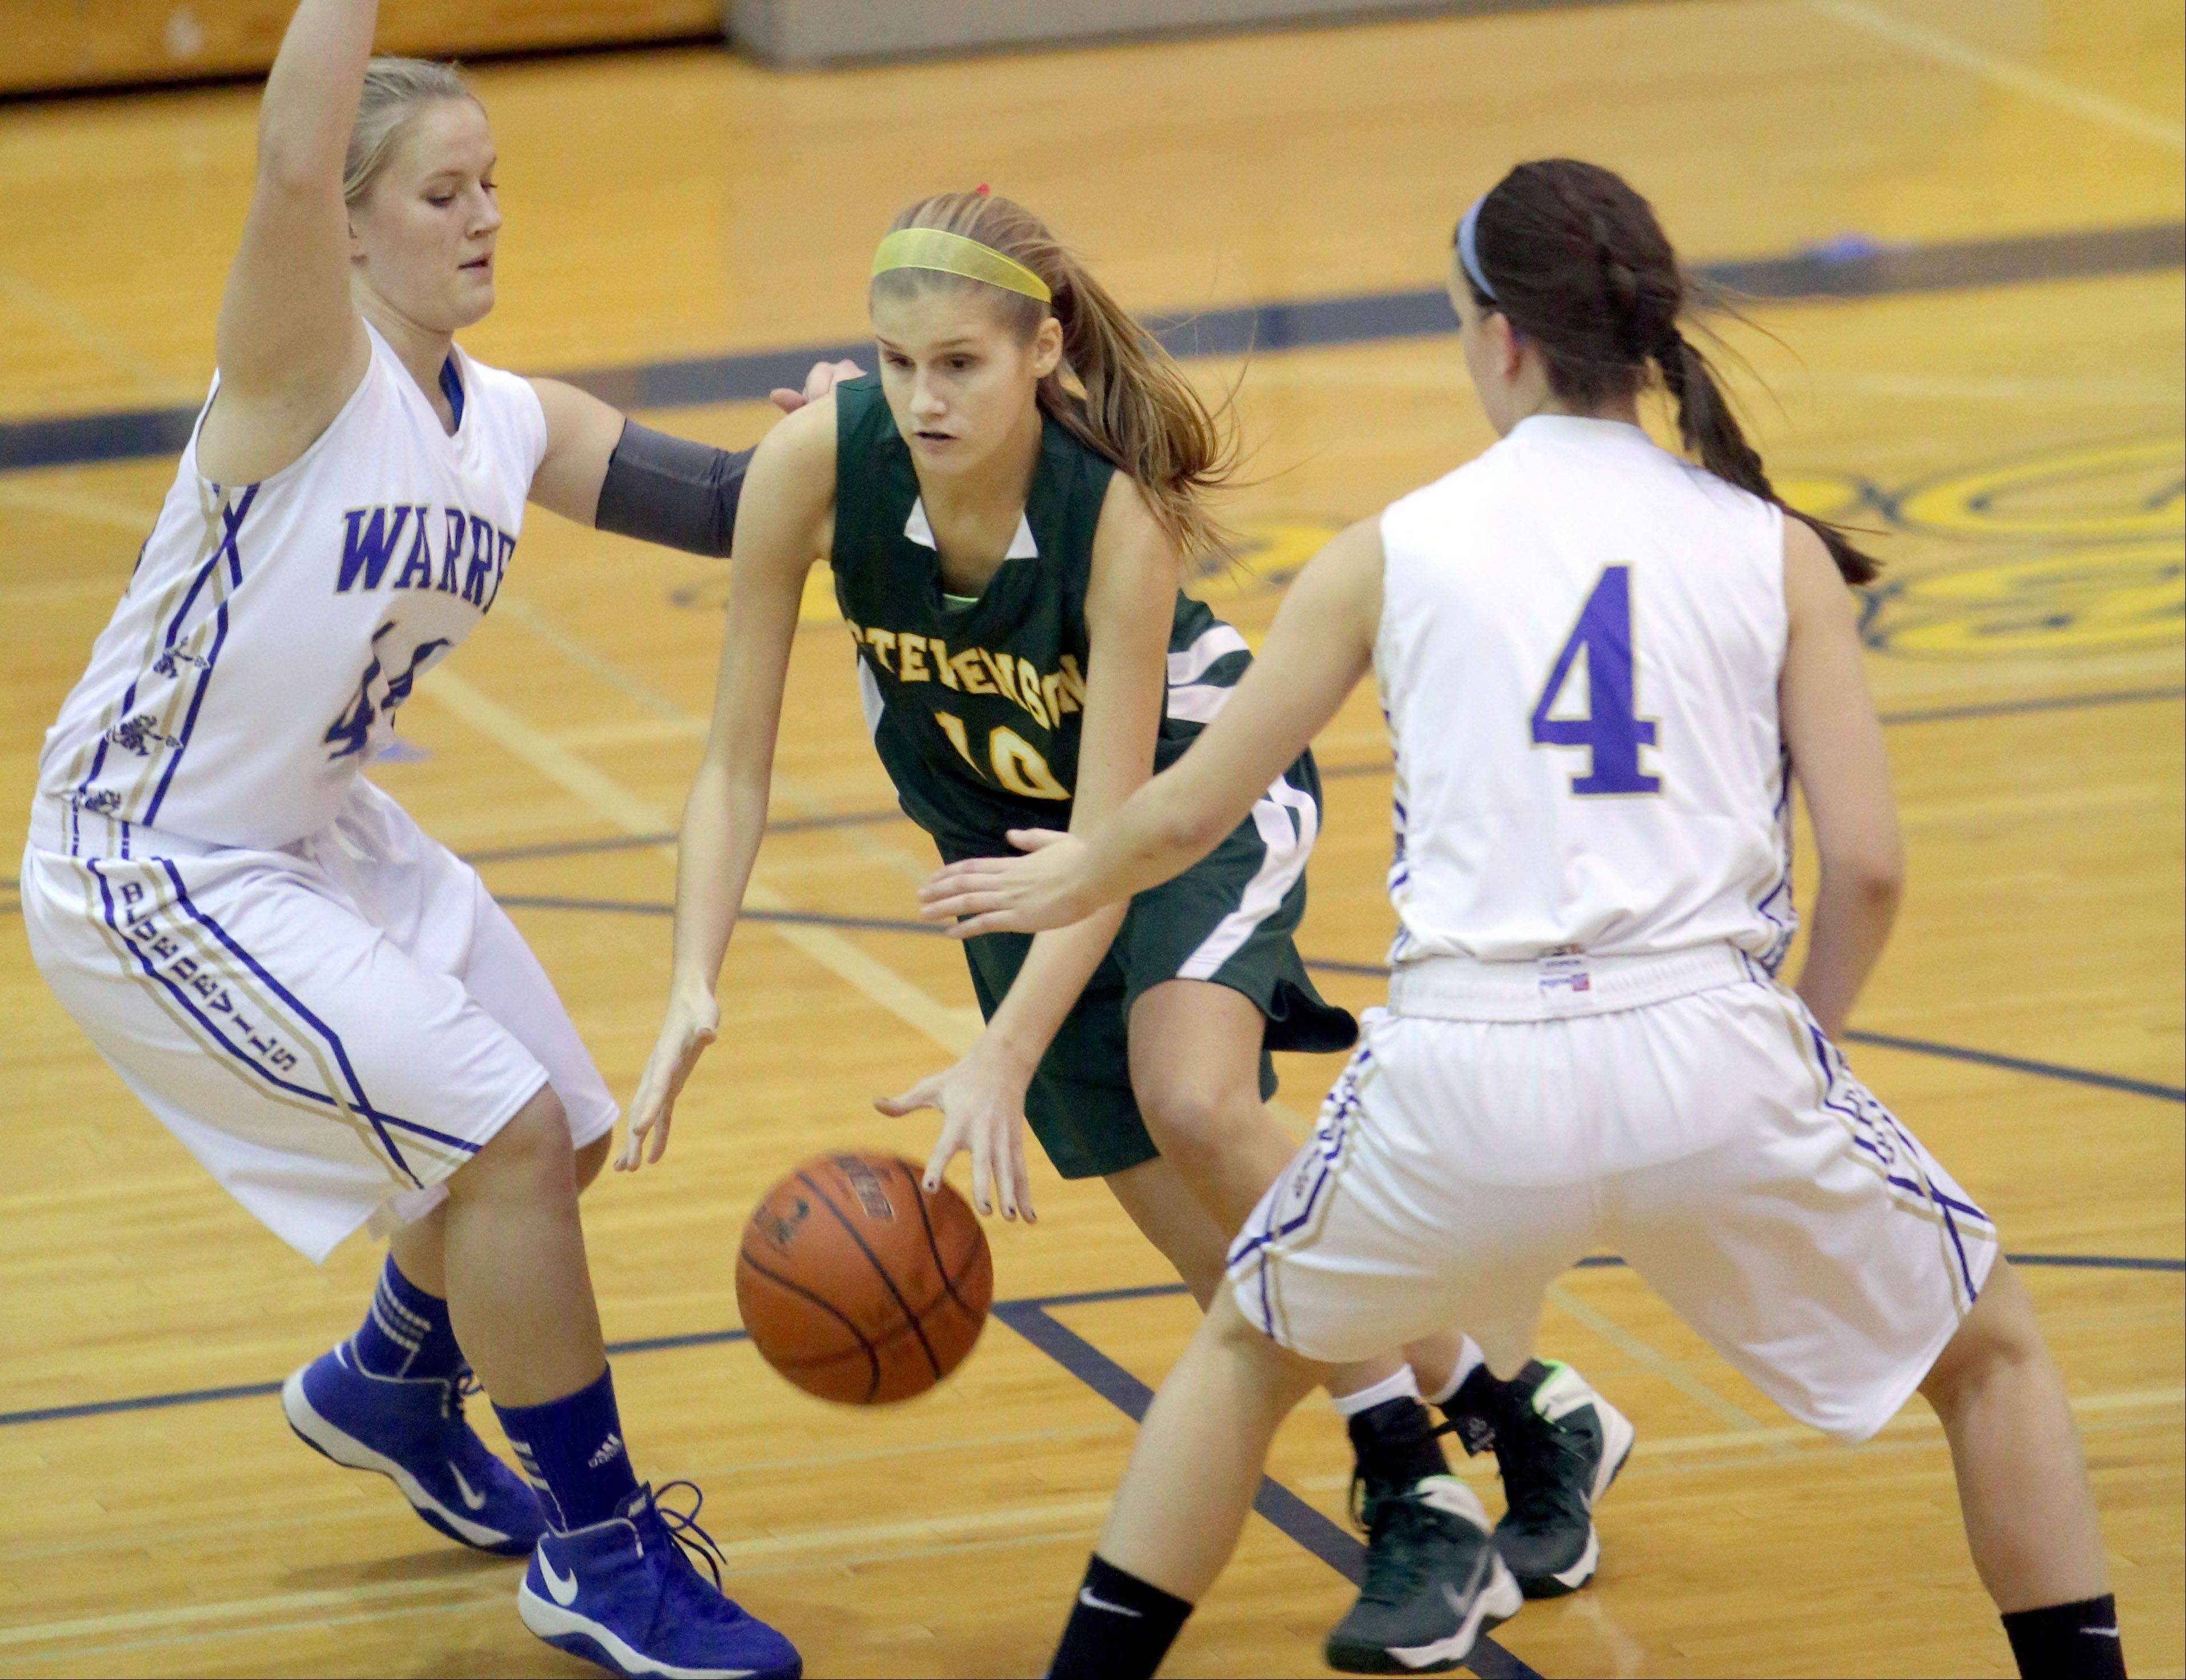 Stevenson�s Chloe Ekenberg, middle, drives through Warren�s Keely Knobbe, left, and Kylie Nedelka during their game Tuesday night in Gurnee.